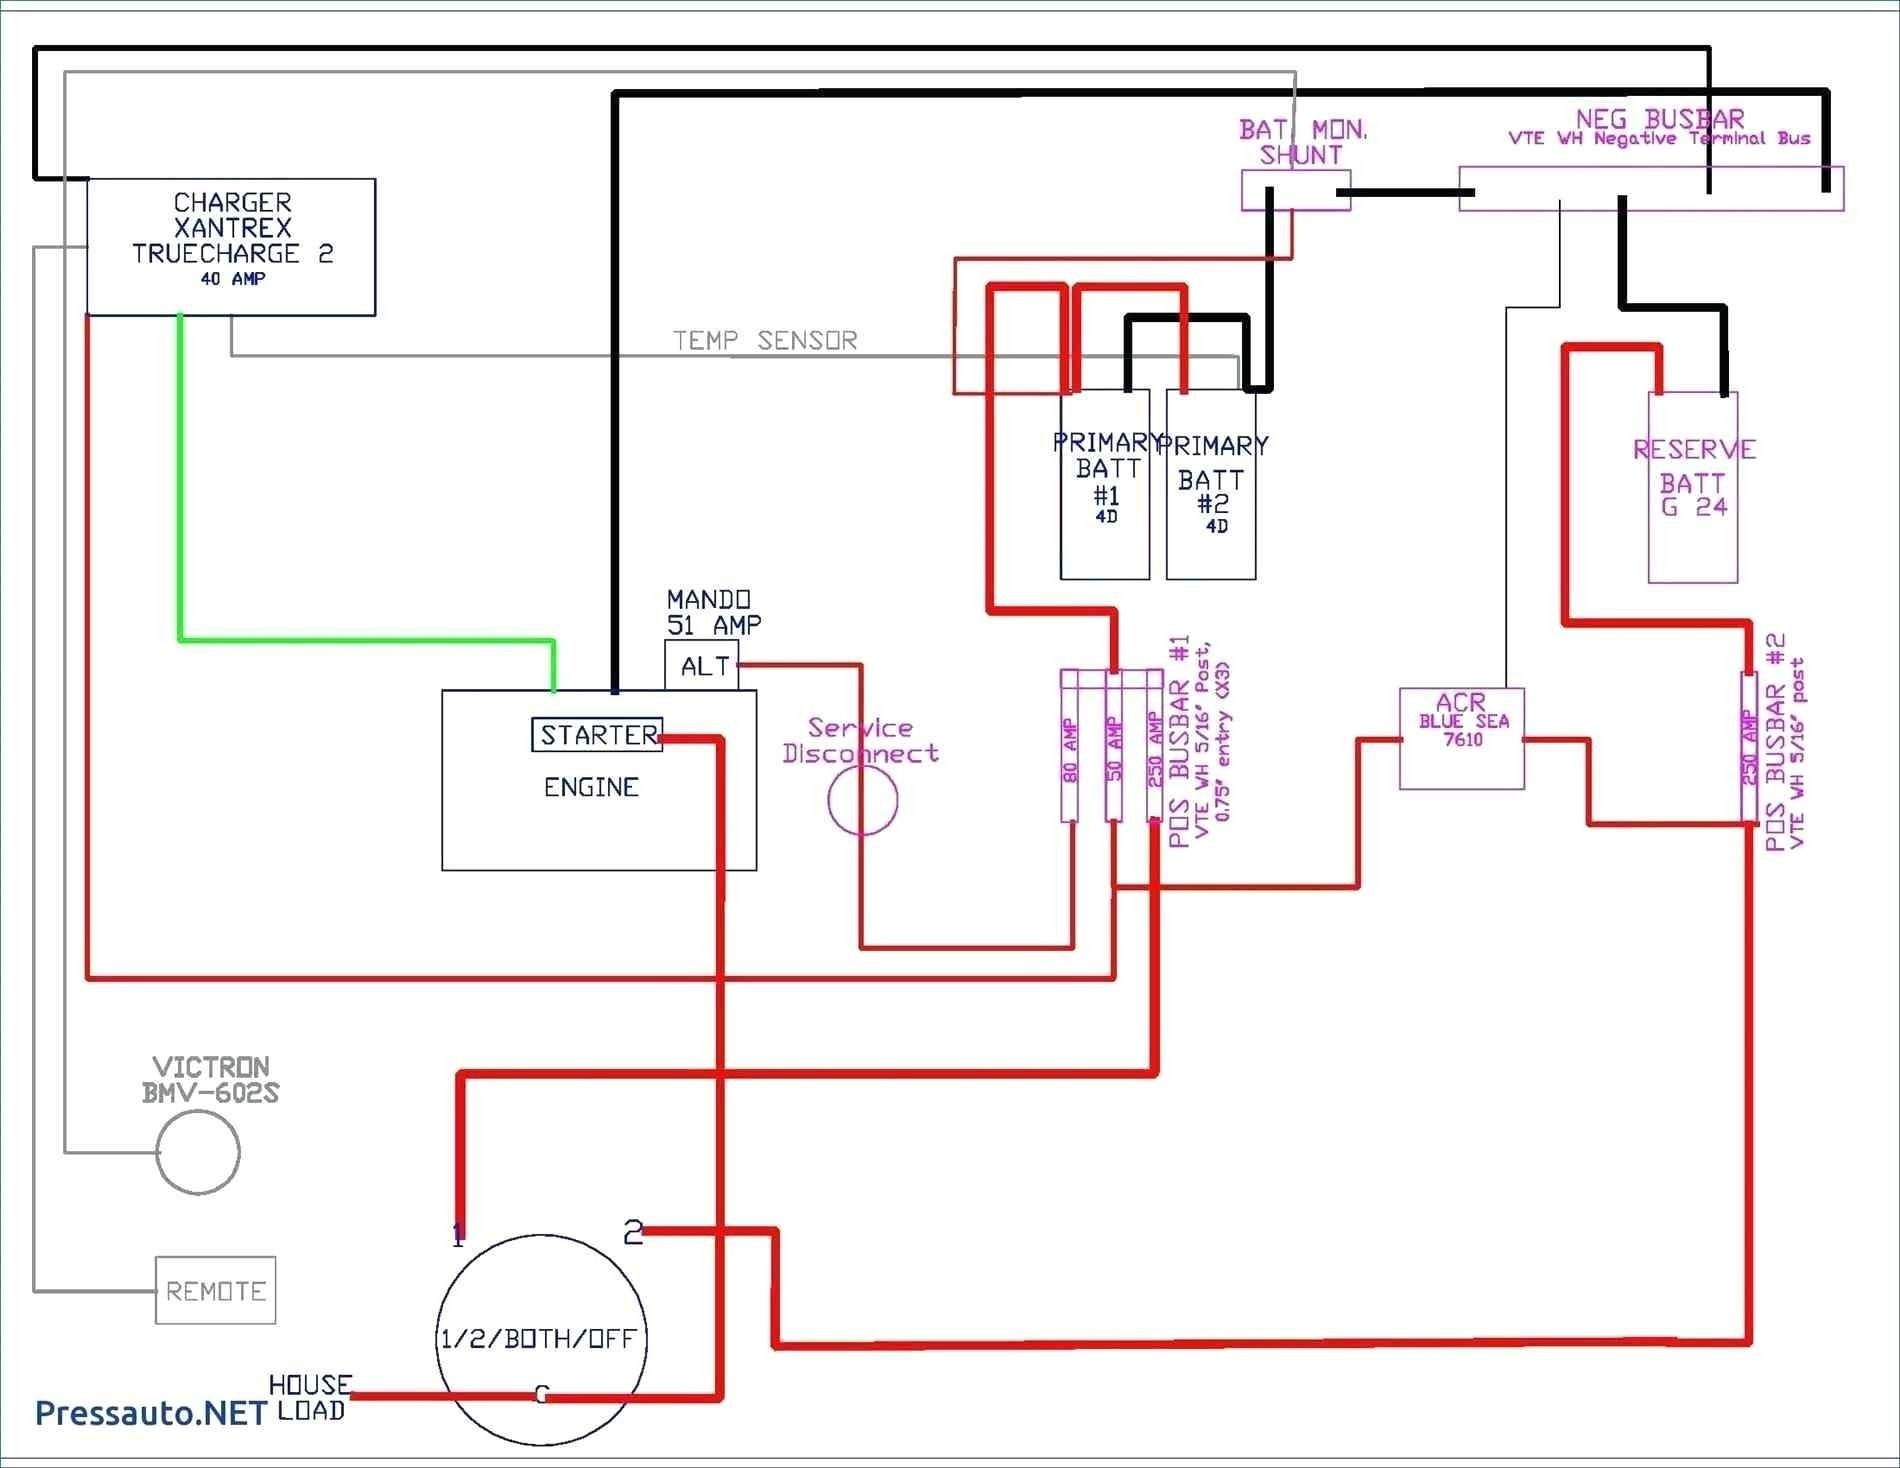 New Basic Wiring Colors Diagram Wiringdiagram Diagramming Diagramm Visuals Visualisation G Electrical Circuit Diagram Electrical Diagram Circuit Diagram